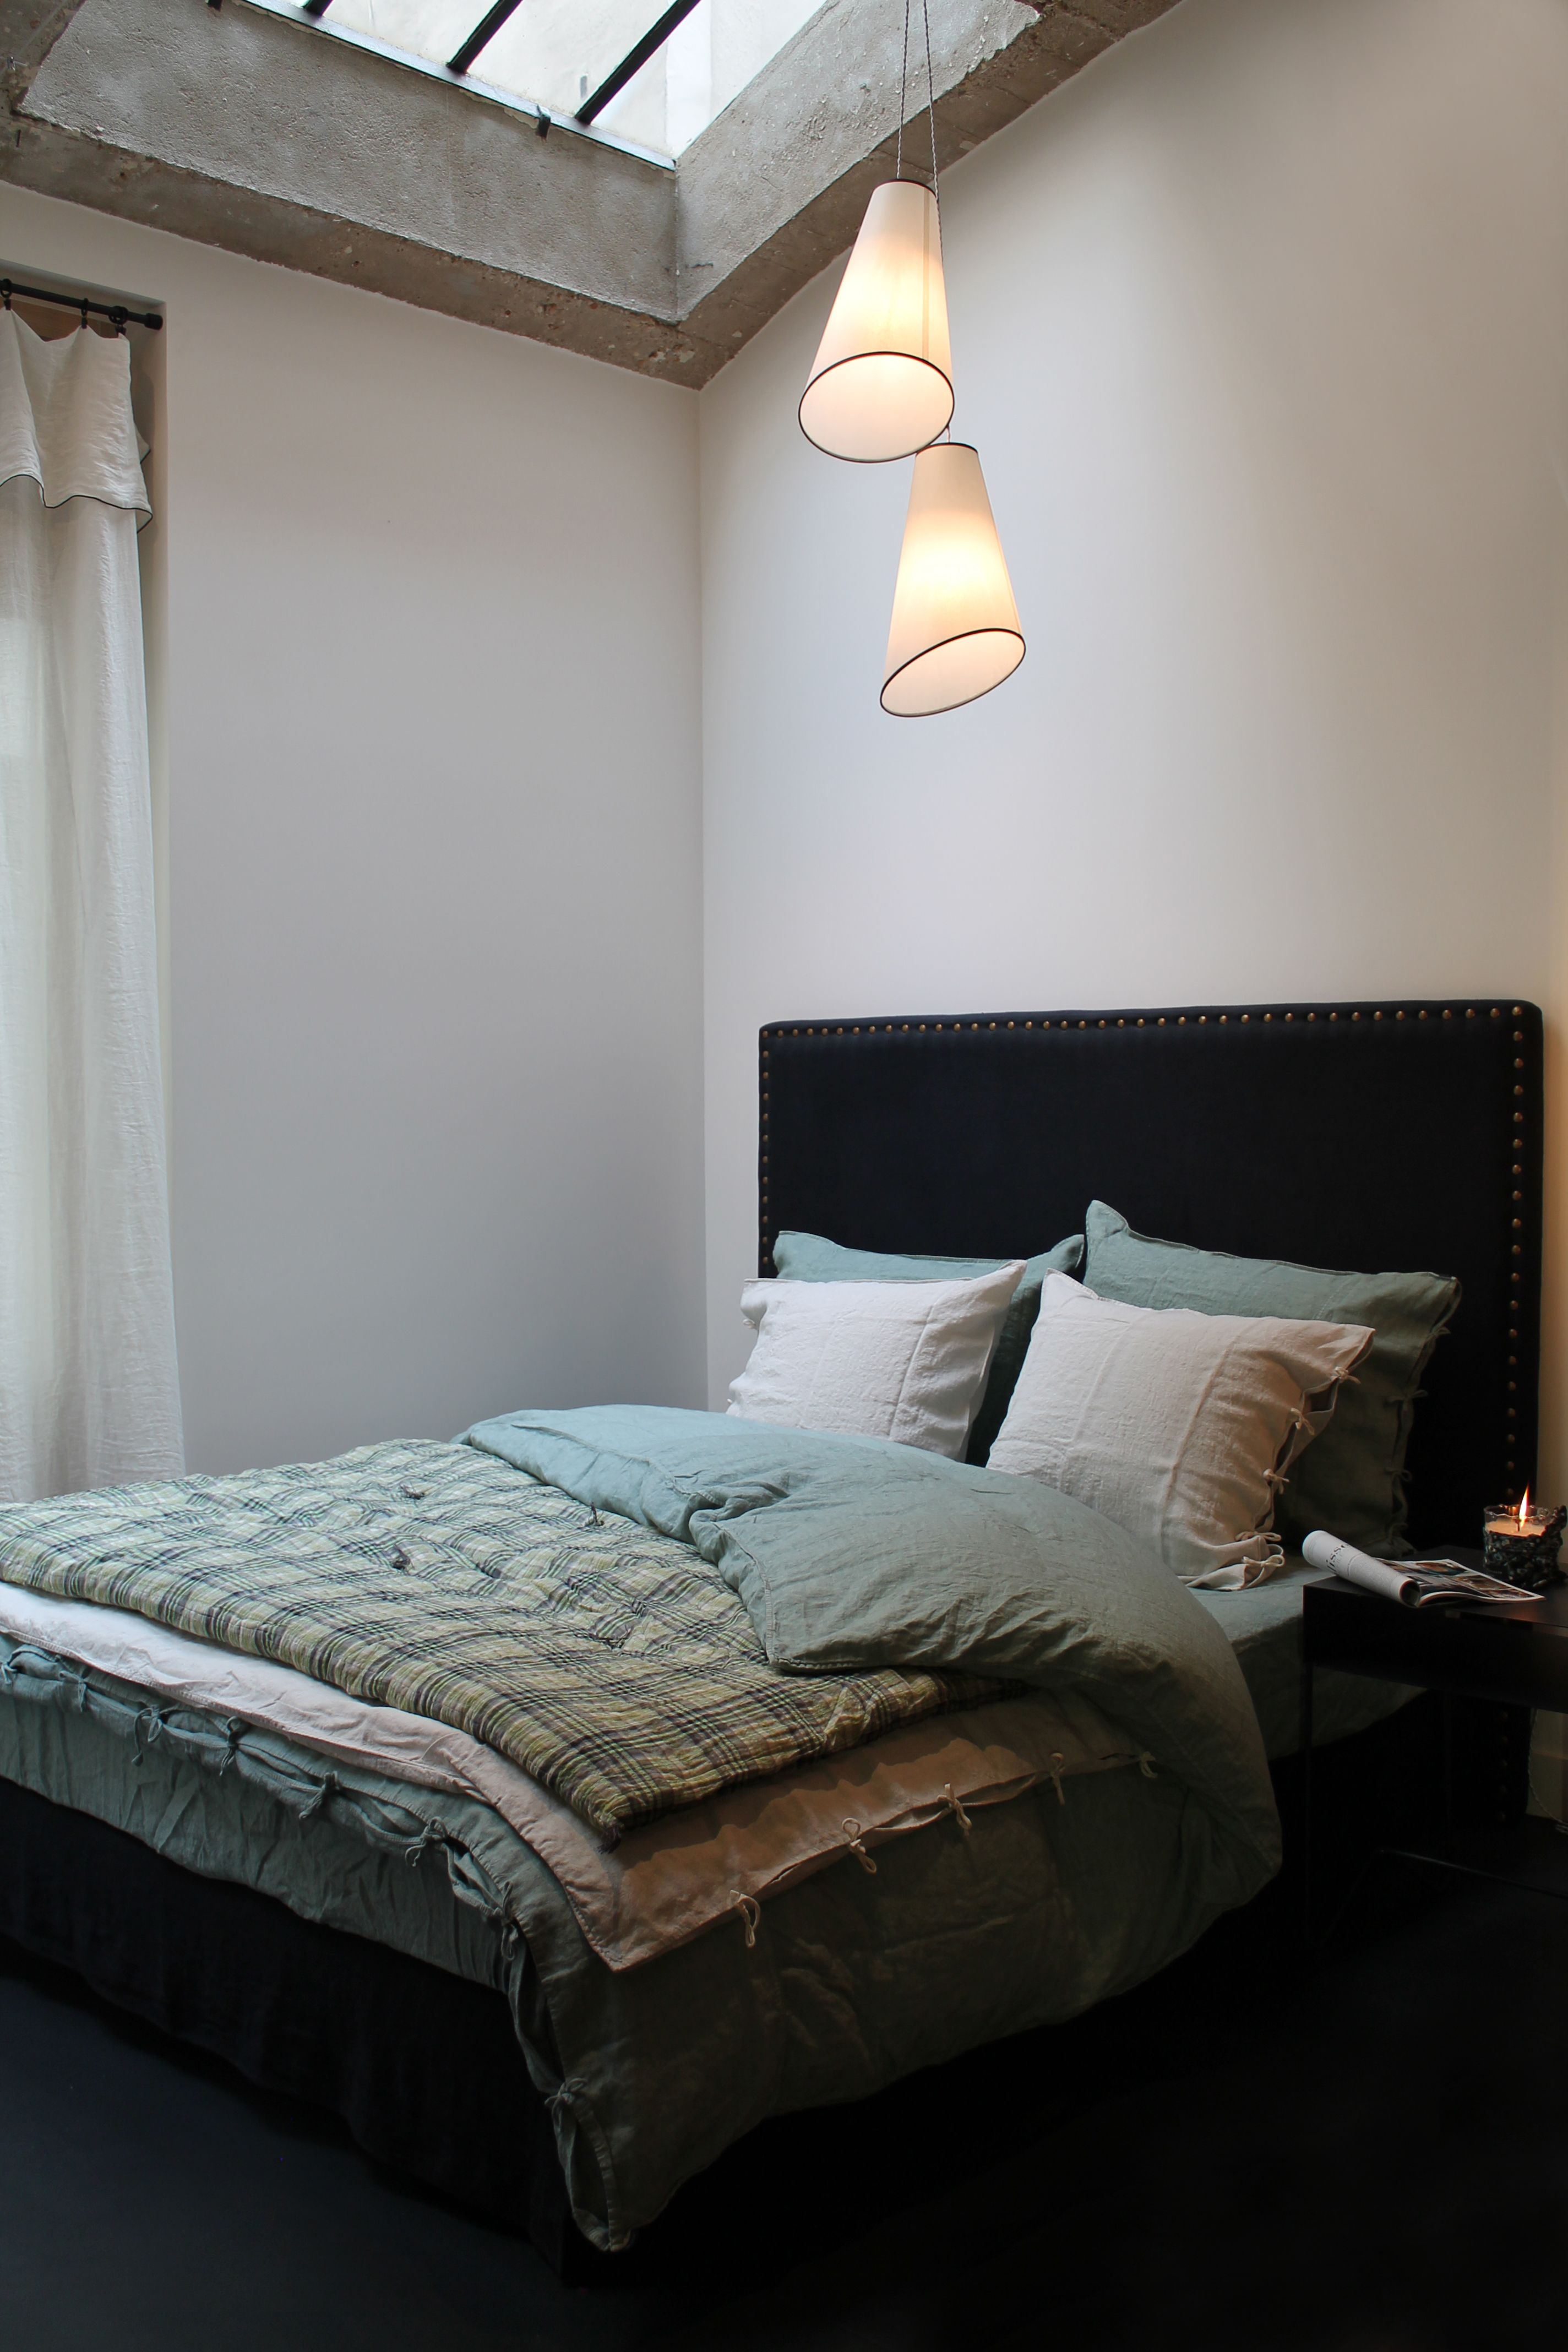 bed inspiration at the caravane saint germain store linen and soft rh pinterest com